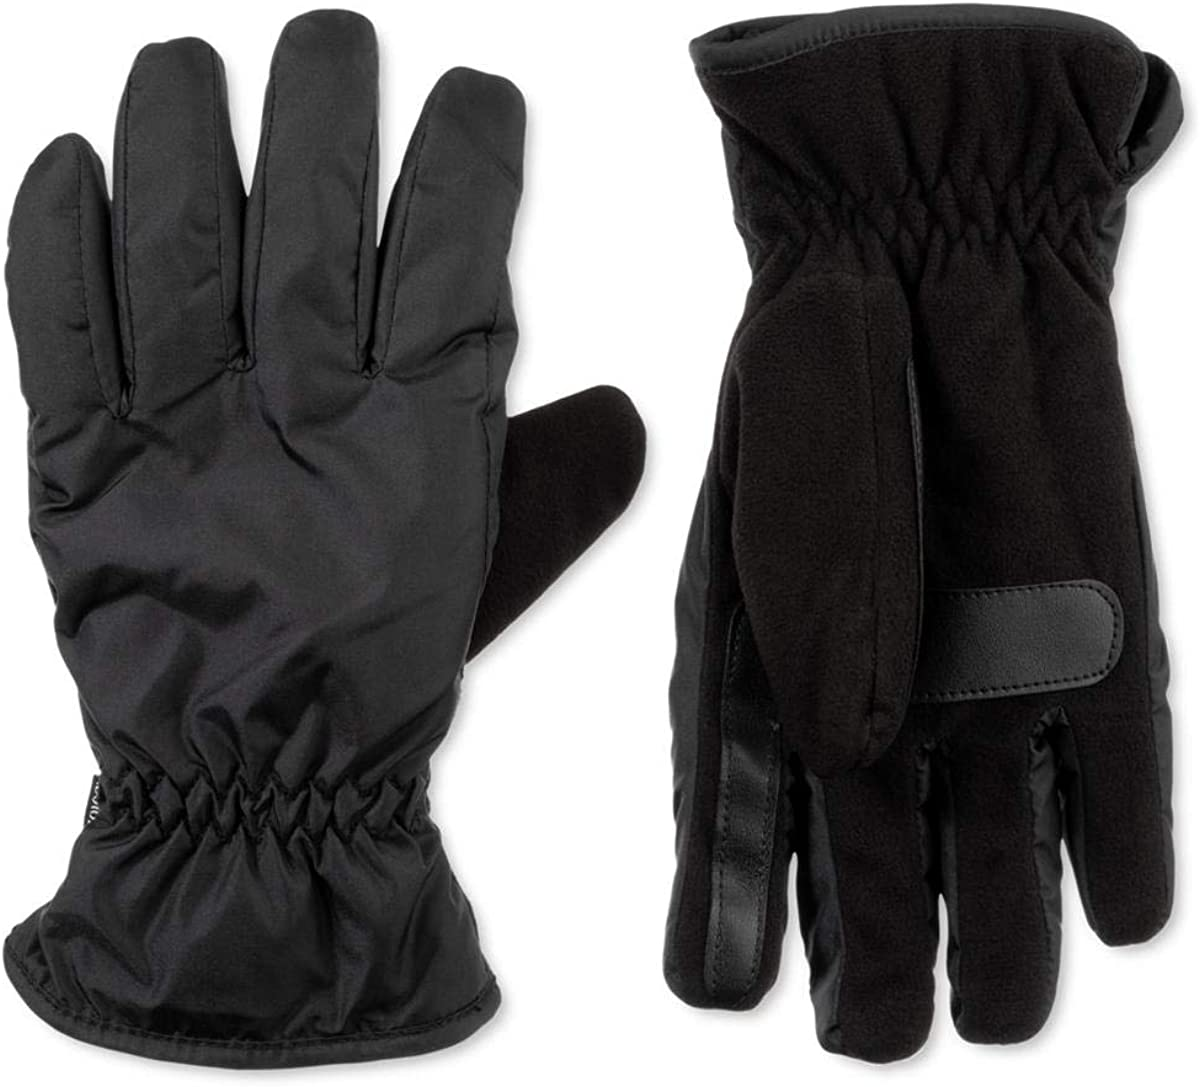 Outstanding Isotoner Mens Cold Weather Touch Black XL All items in the store Gloves Screen Winter